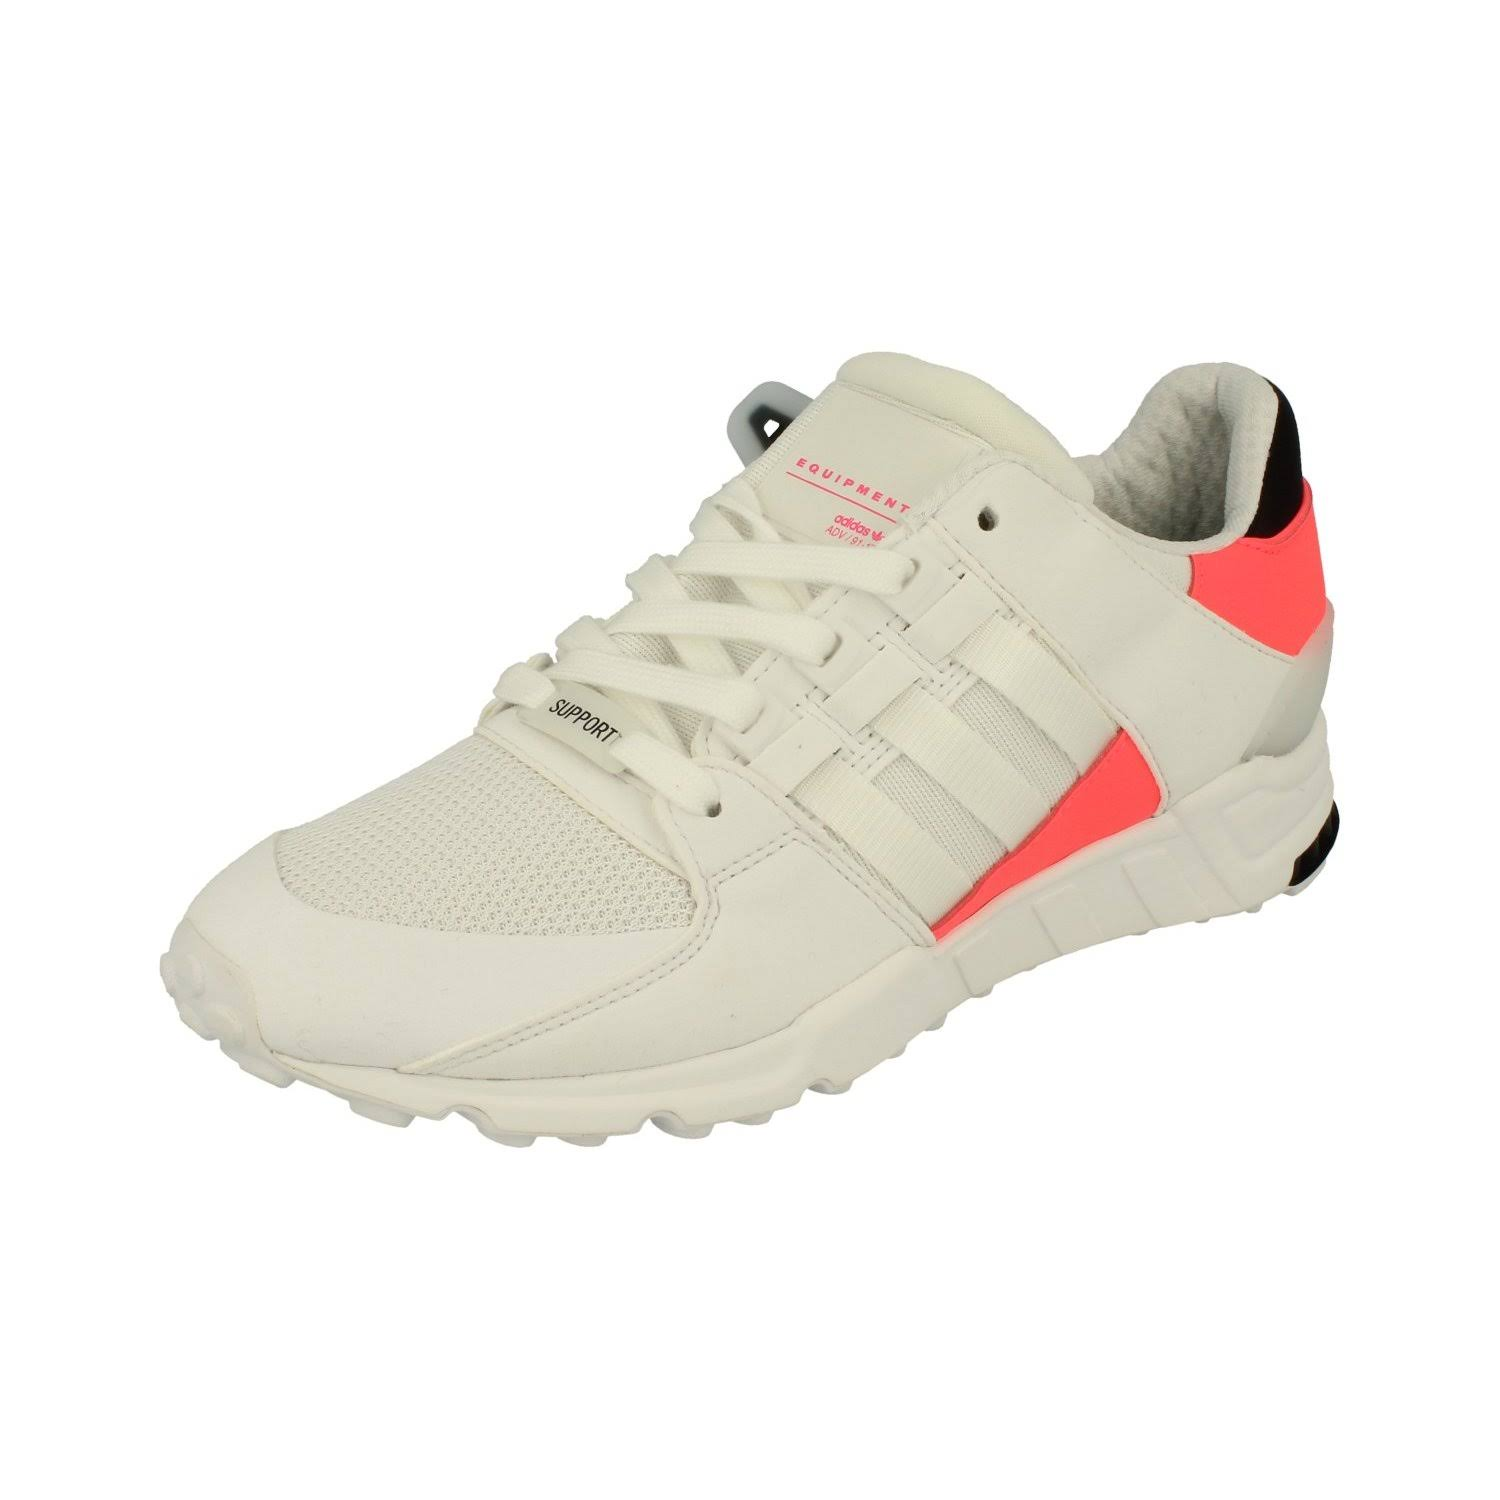 (6) Adidas Originals Eqt Support Rf Mens Running Trainers Sneakers